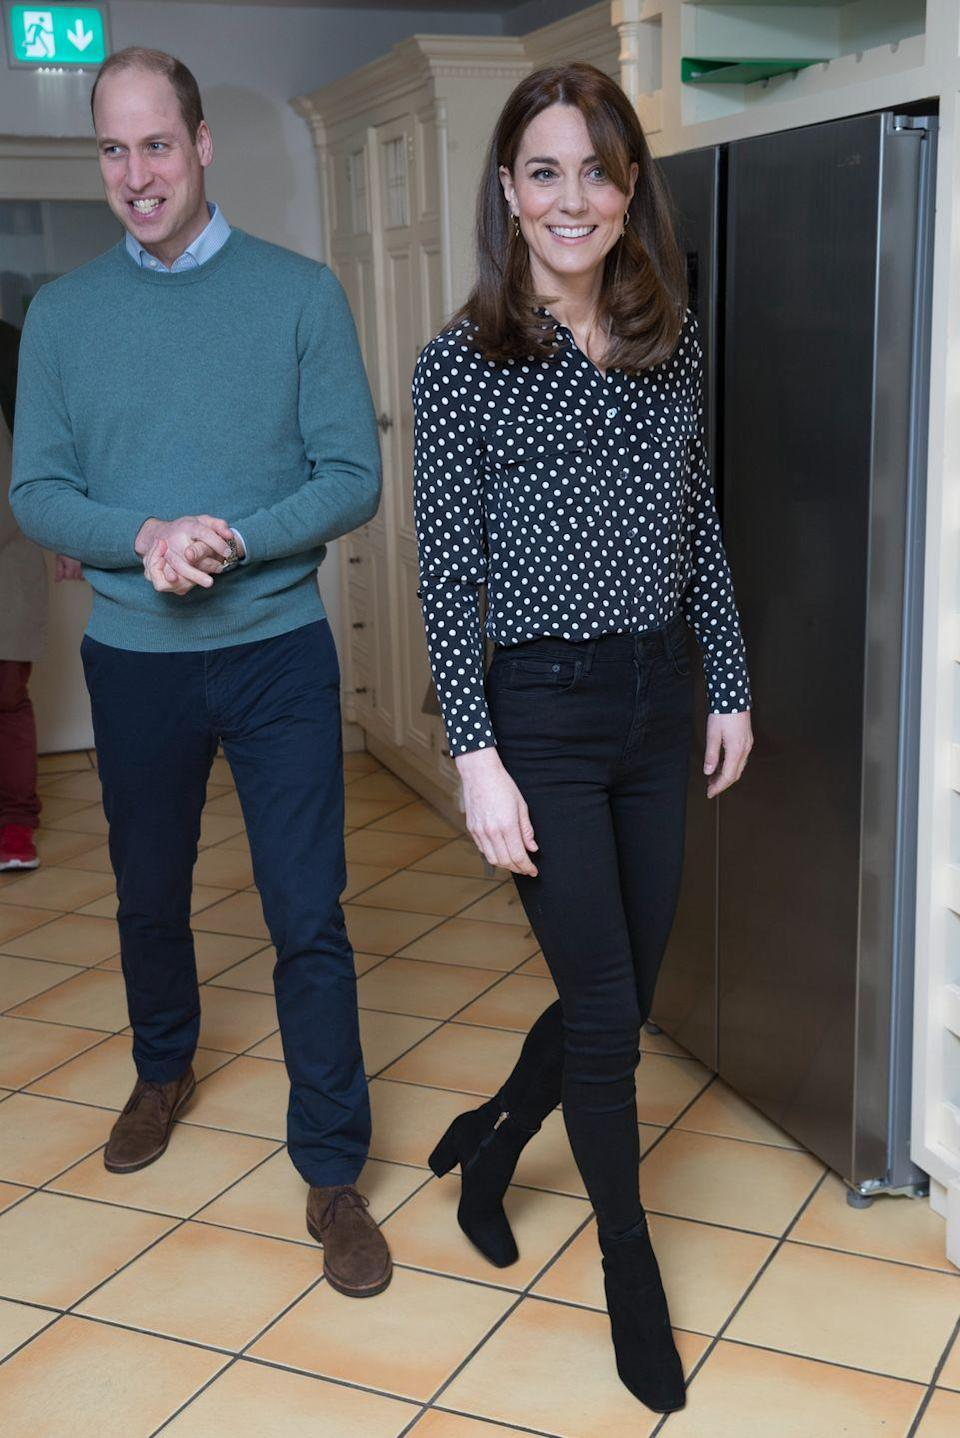 """<p>Kate wore a black and white polka dot Equipment blouse (shop it <a href=""""https://www.shopbop.com/slim-signature-blouse-equipment/vp/v=1/1573086384.htm?gclid=Cj0KCQiAwP3yBRCkARIsAABGiPop3wYaPYcp5n-przPOBRHqnLAnOhdfXzQbXB0HzgXMK4WyJwJtJ8MaApHeEALw_wcB¤cyCode=USD&extid=SE_froogle_SC_usa&cvosrc=cse.google.EQUIP41183&cvo_campaign=SB_Google_USD&ef_id=Cj0KCQiAwP3yBRCkARIsAABGiPop3wYaPYcp5n-przPOBRHqnLAnOhdfXzQbXB0HzgXMK4WyJwJtJ8MaApHeEALw_wcB:G:s&extid=affprg_linkshare_SB-TnL5HPStwNw&cvosrc=affiliate.linkshare.TnL5HPStwNw&affuid=74968X1524972Xfe6e186d3e29a9833f4a1bd3ac0908bc&sharedid=42352&subid1=TnL5HPStwNw-adkVnSMpm.k3qN5.0hA4aw"""" rel=""""nofollow noopener"""" target=""""_blank"""" data-ylk=""""slk:here"""" class=""""link rapid-noclick-resp"""">here</a>) to visit Savannah House, a charity residential facility in County Meath, Ireland. She paired the blouse with black skinny jeans and heeled booties and topped off the look with a <a href=""""https://www.townandcountrymag.com/society/tradition/a31222370/kate-middleton-white-coat-prince-william-jigsaw-ireland-photos/"""" rel=""""nofollow noopener"""" target=""""_blank"""" data-ylk=""""slk:cream Reiss coat"""" class=""""link rapid-noclick-resp"""">cream Reiss coat</a>. </p>"""